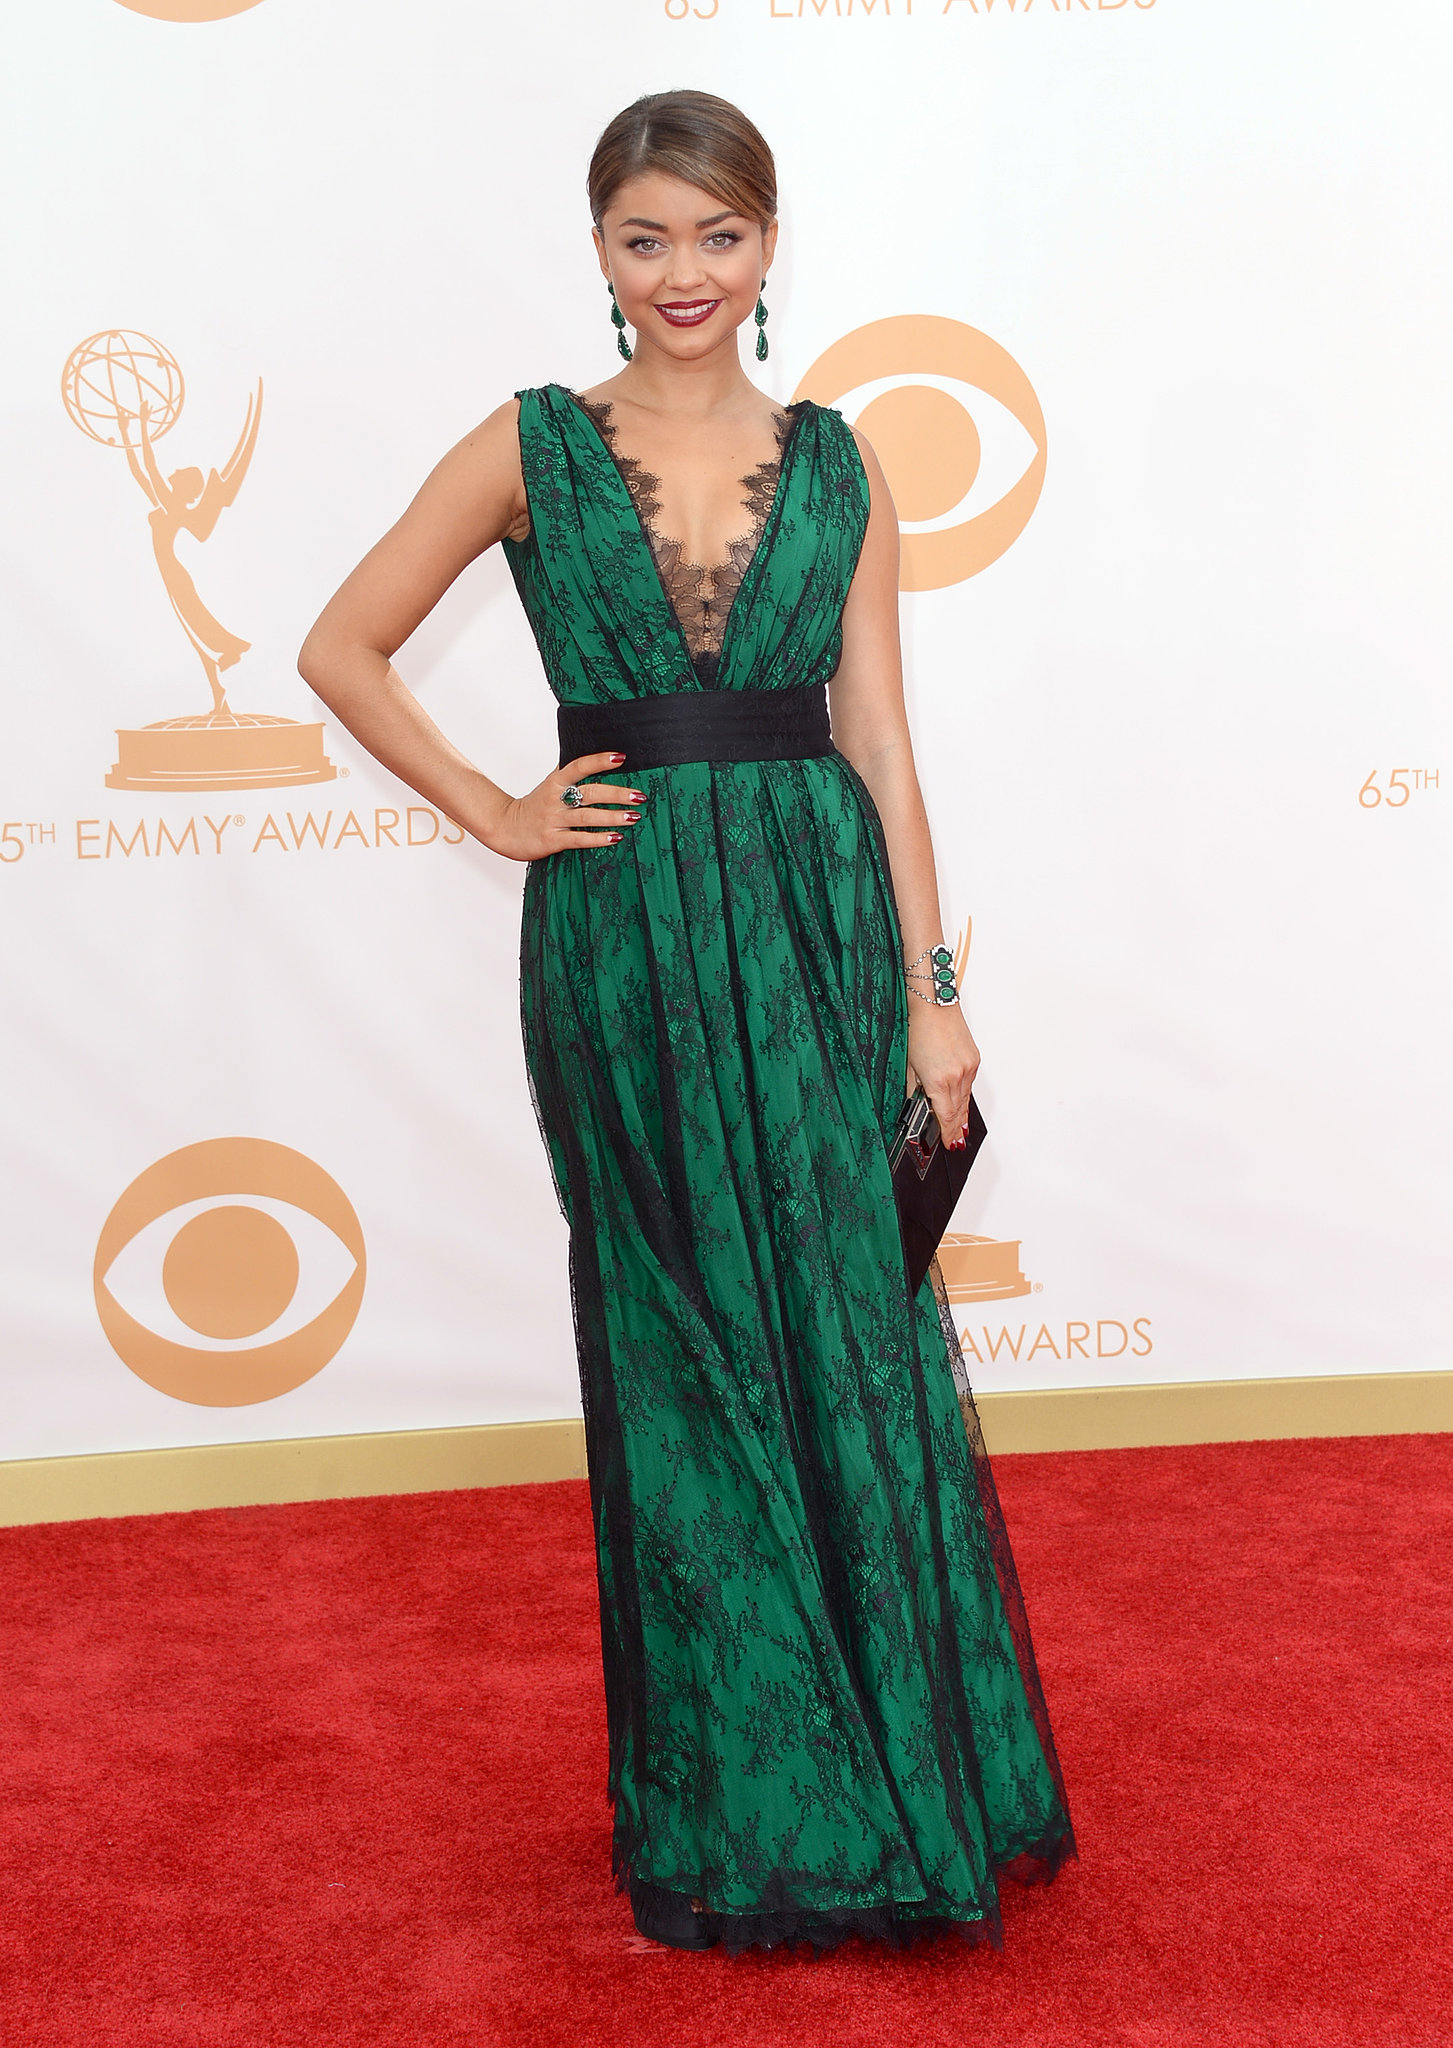 Sarah Hyland went green, picking a v-neck dress accented with black lace from CH Carolina Herrera.